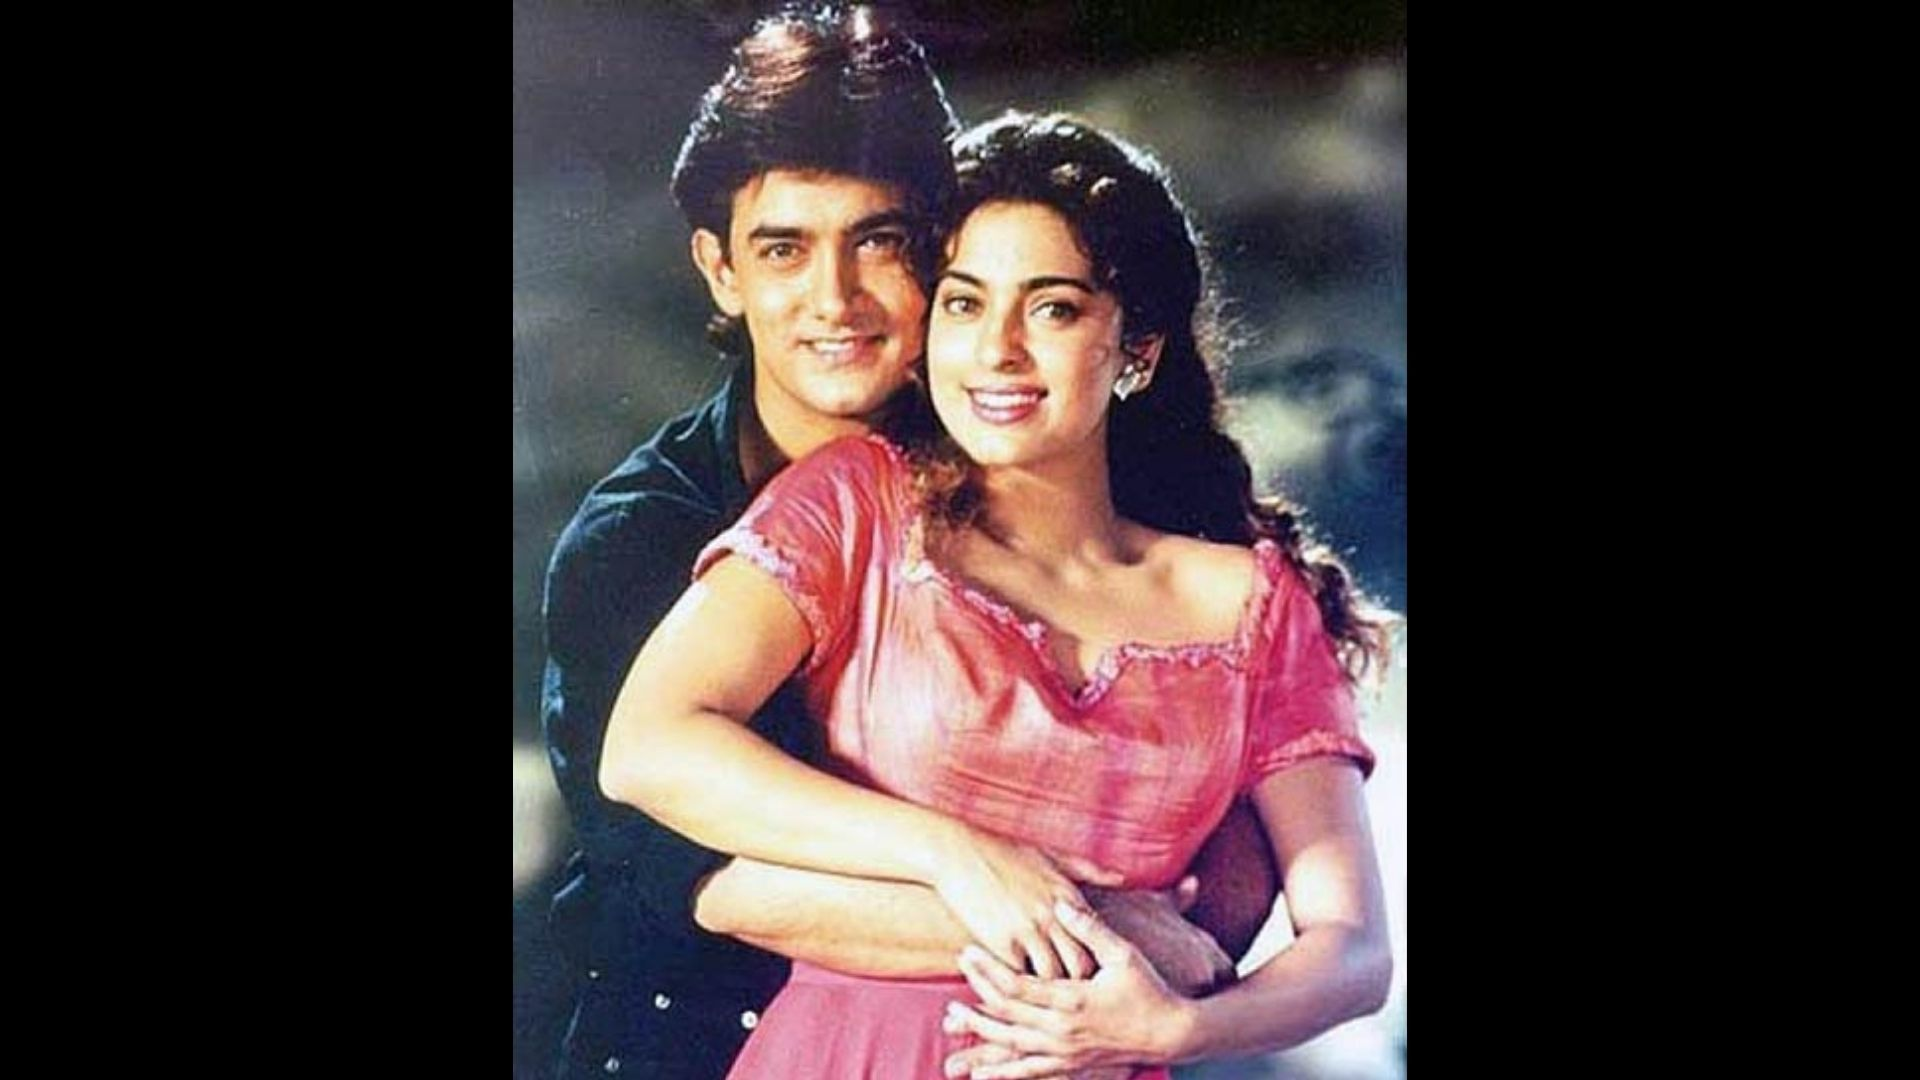 Did You Know Aamir Khan And Juhi Chawla Were Once Shooed Away By Taxi Drivers In Mumbai? Know More